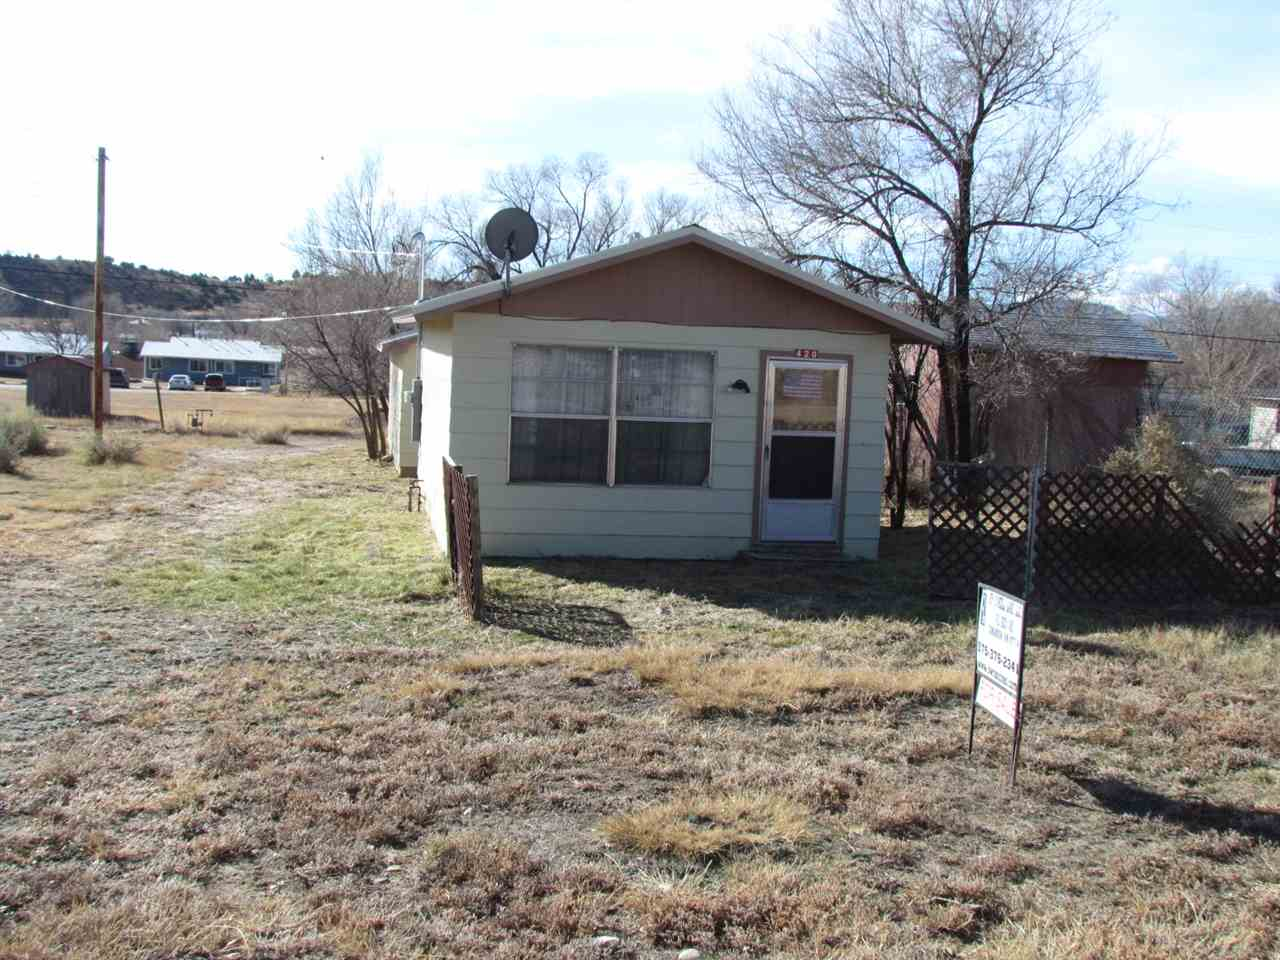 420 E 7th St, Cimarron, NM 87714